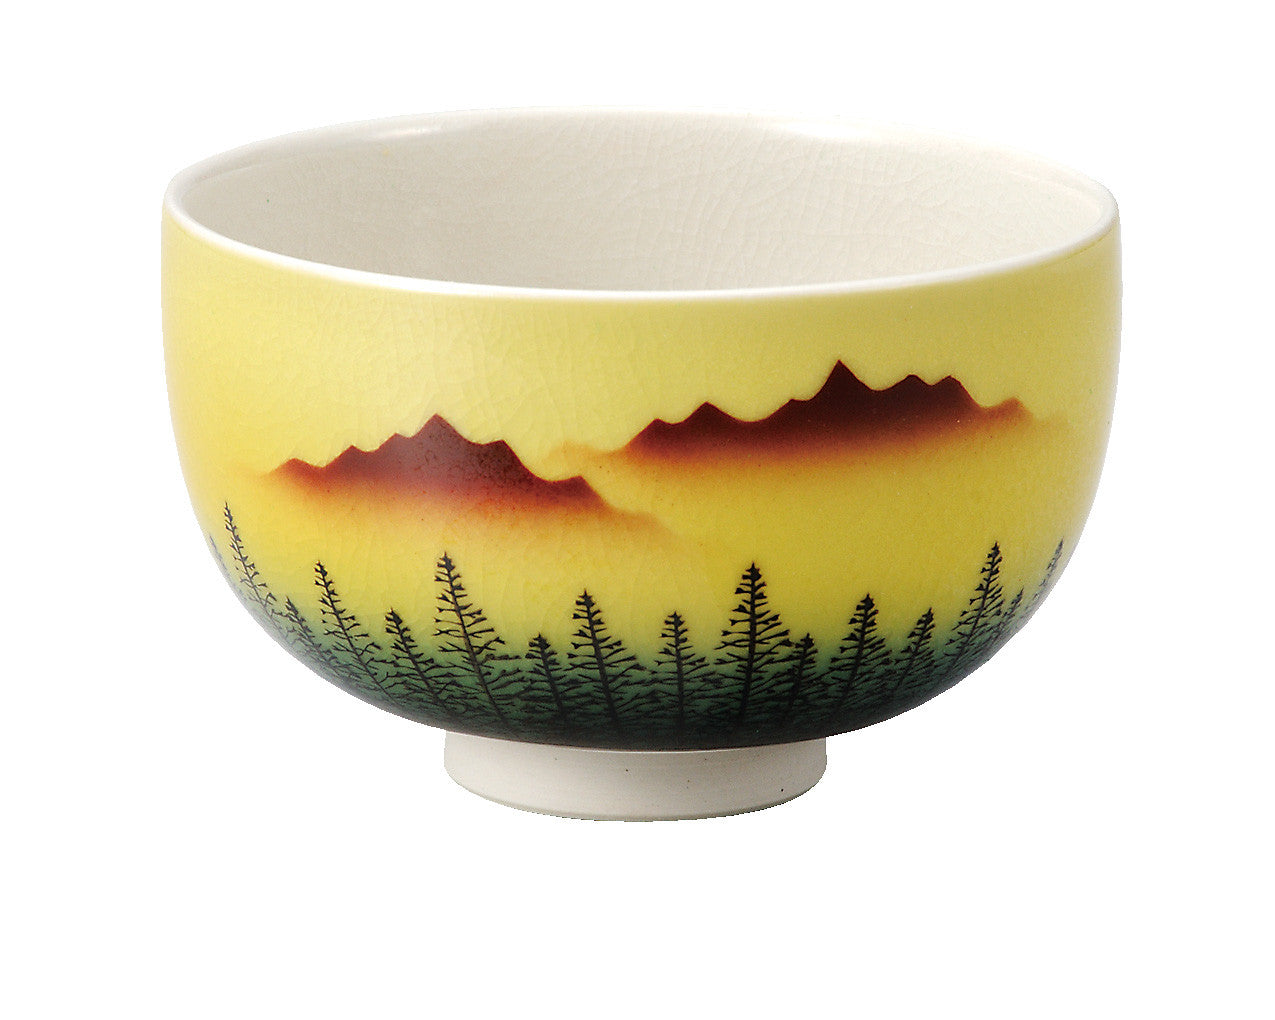 japan kutani matcha tea bowl